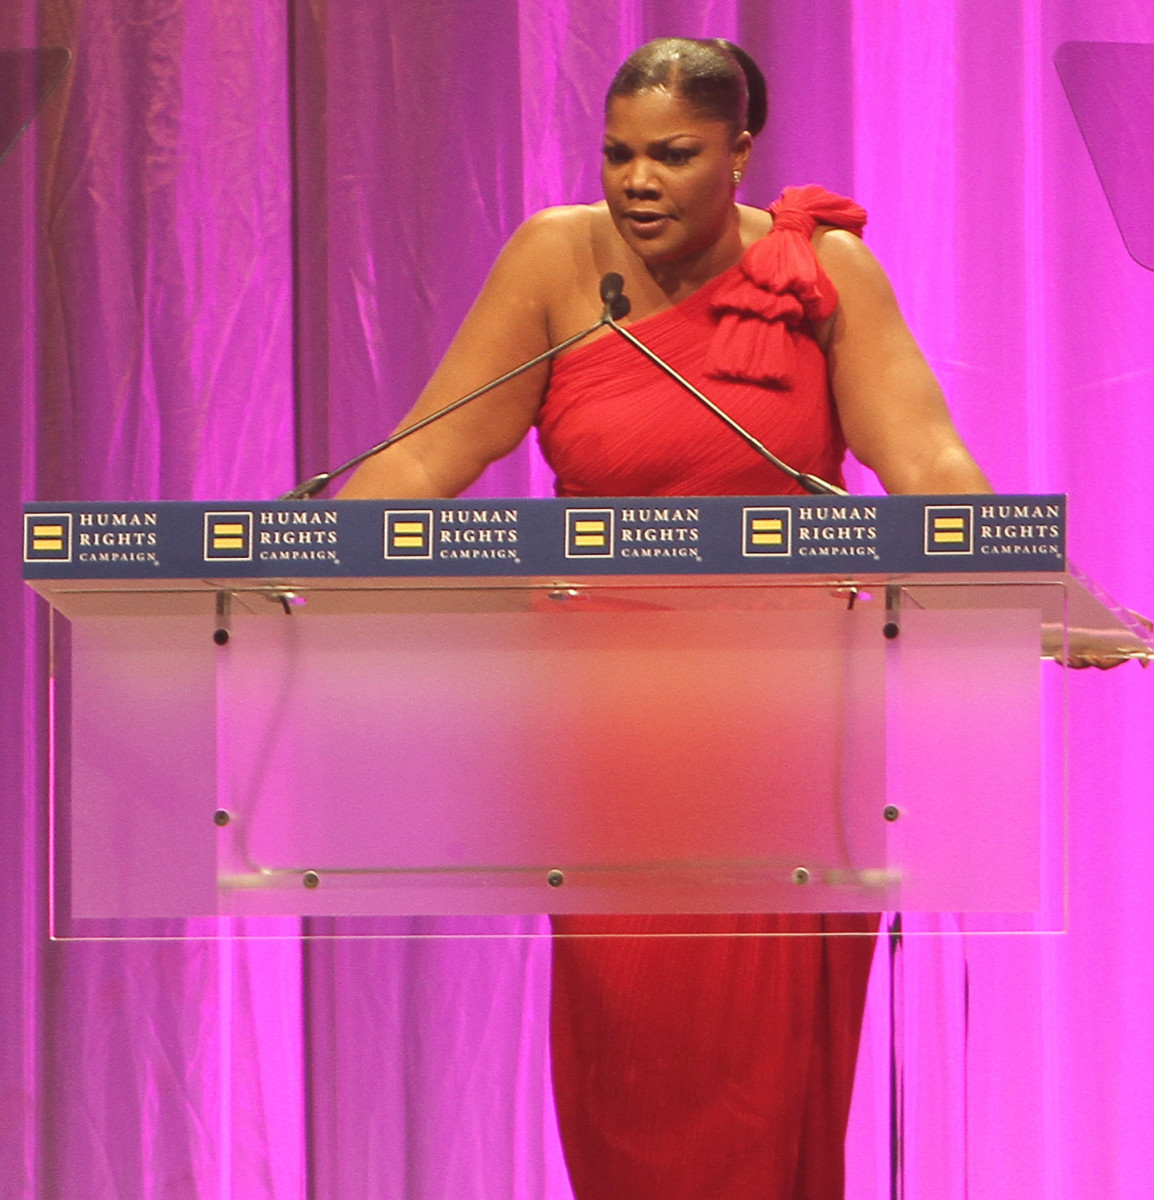 Academy-Award winning actress, Mo'Nique, at the 2010 Human Rights Campaign National Dinner in Washington, DC.